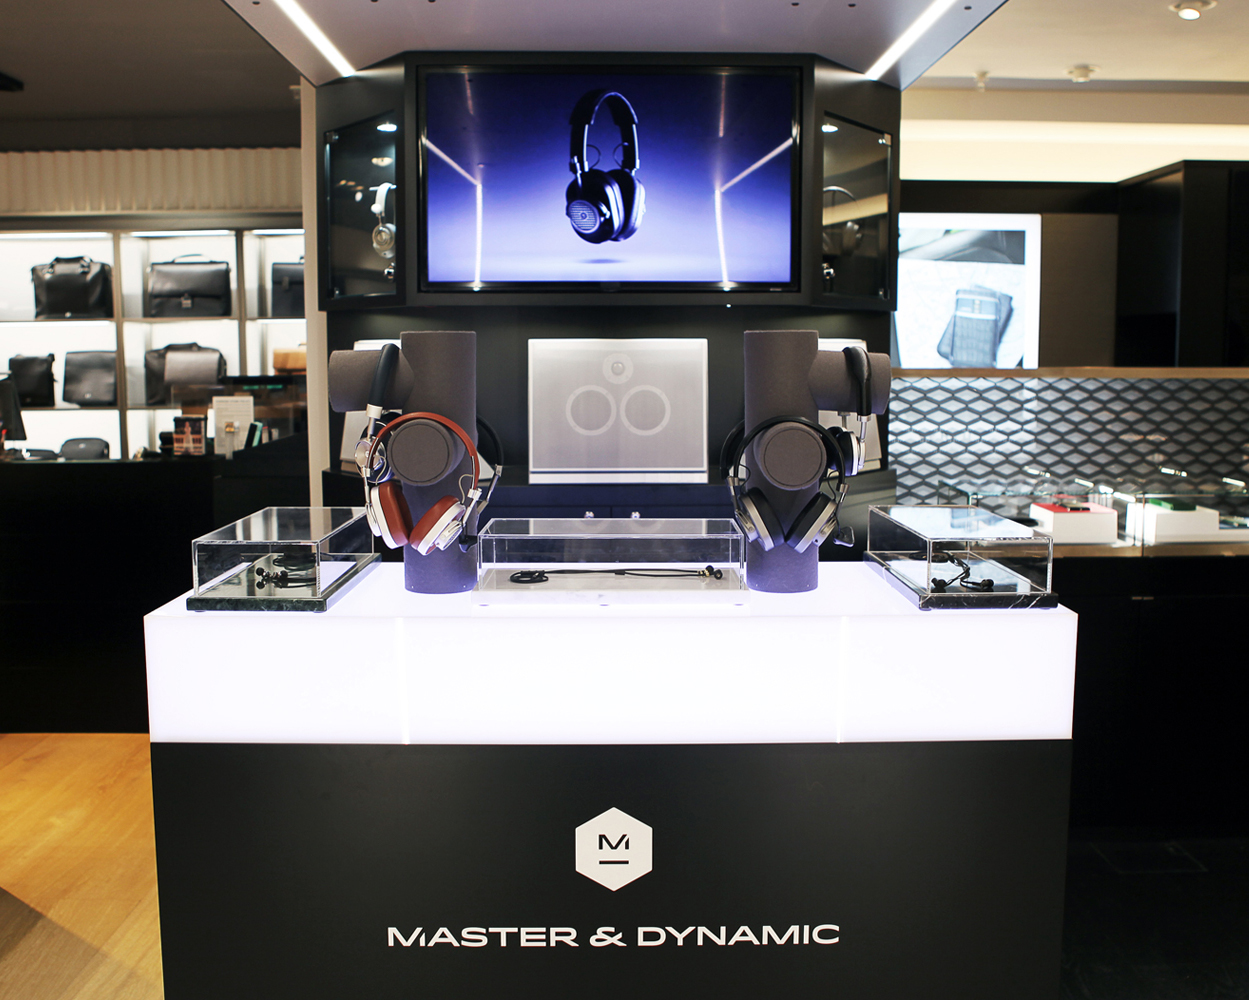 Master & Dynamic: Harrods Pop-Up